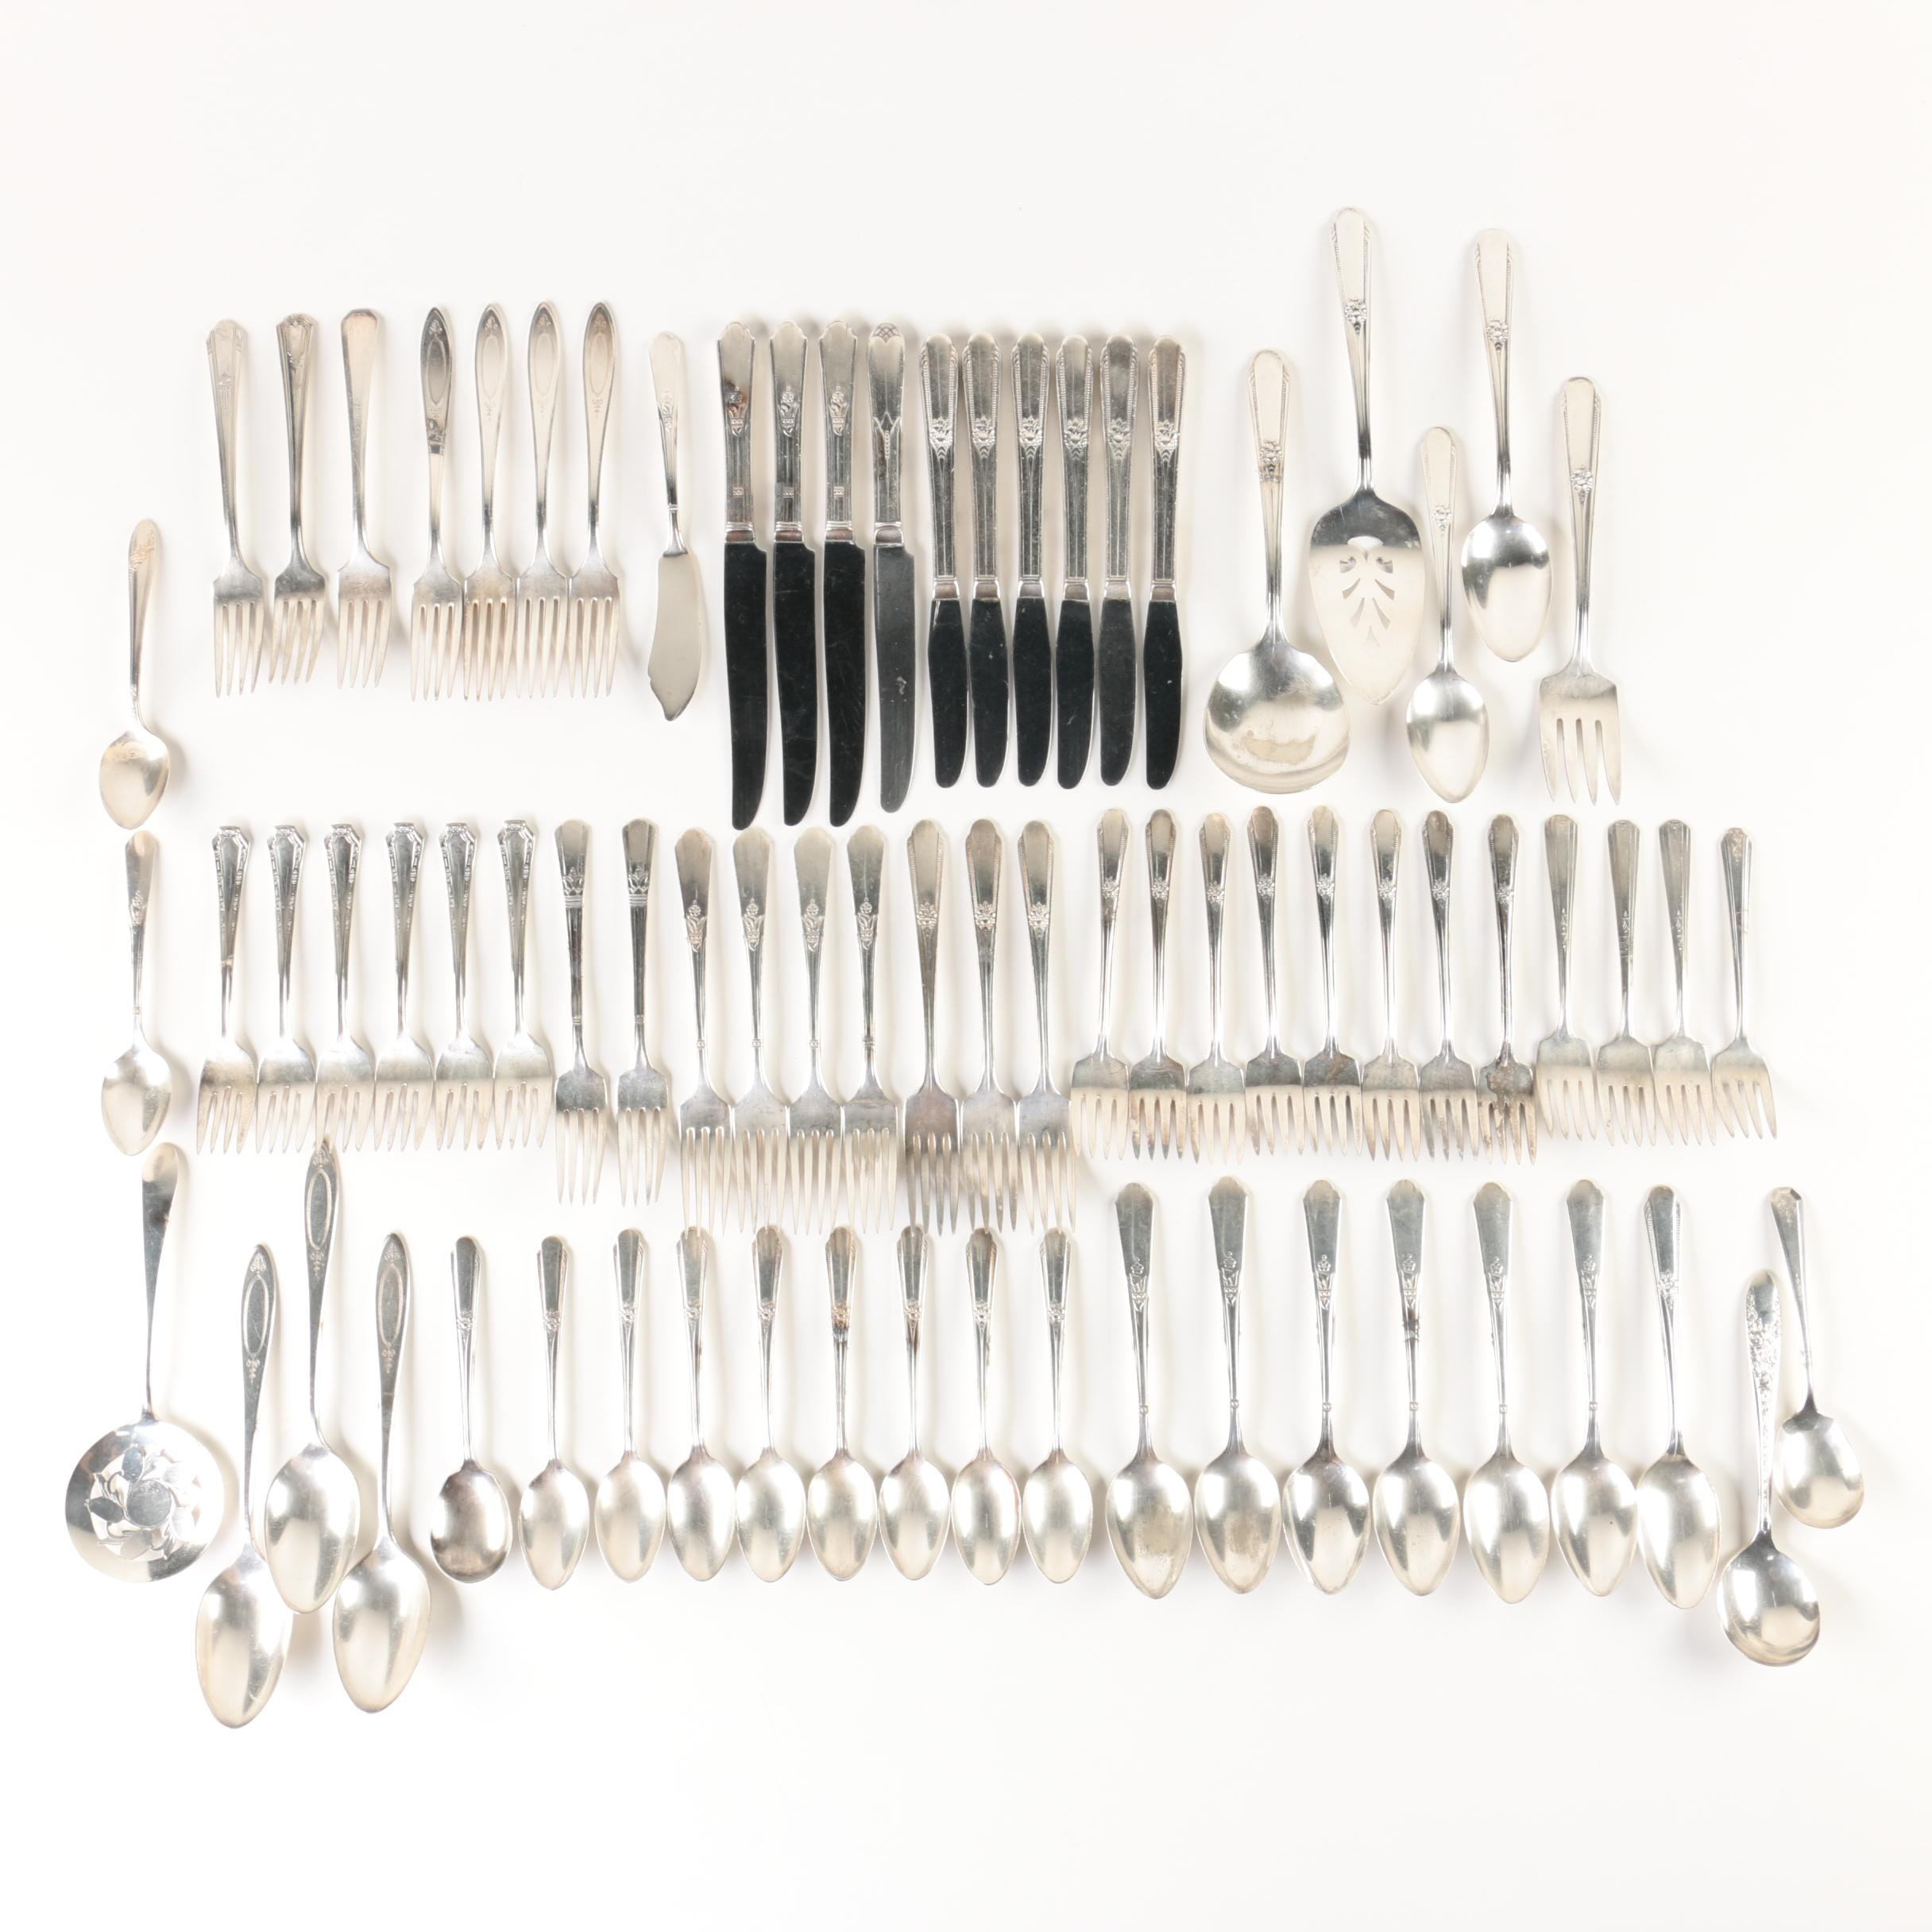 Silver Plate Flatware Collection Featuring Wm. Rogers